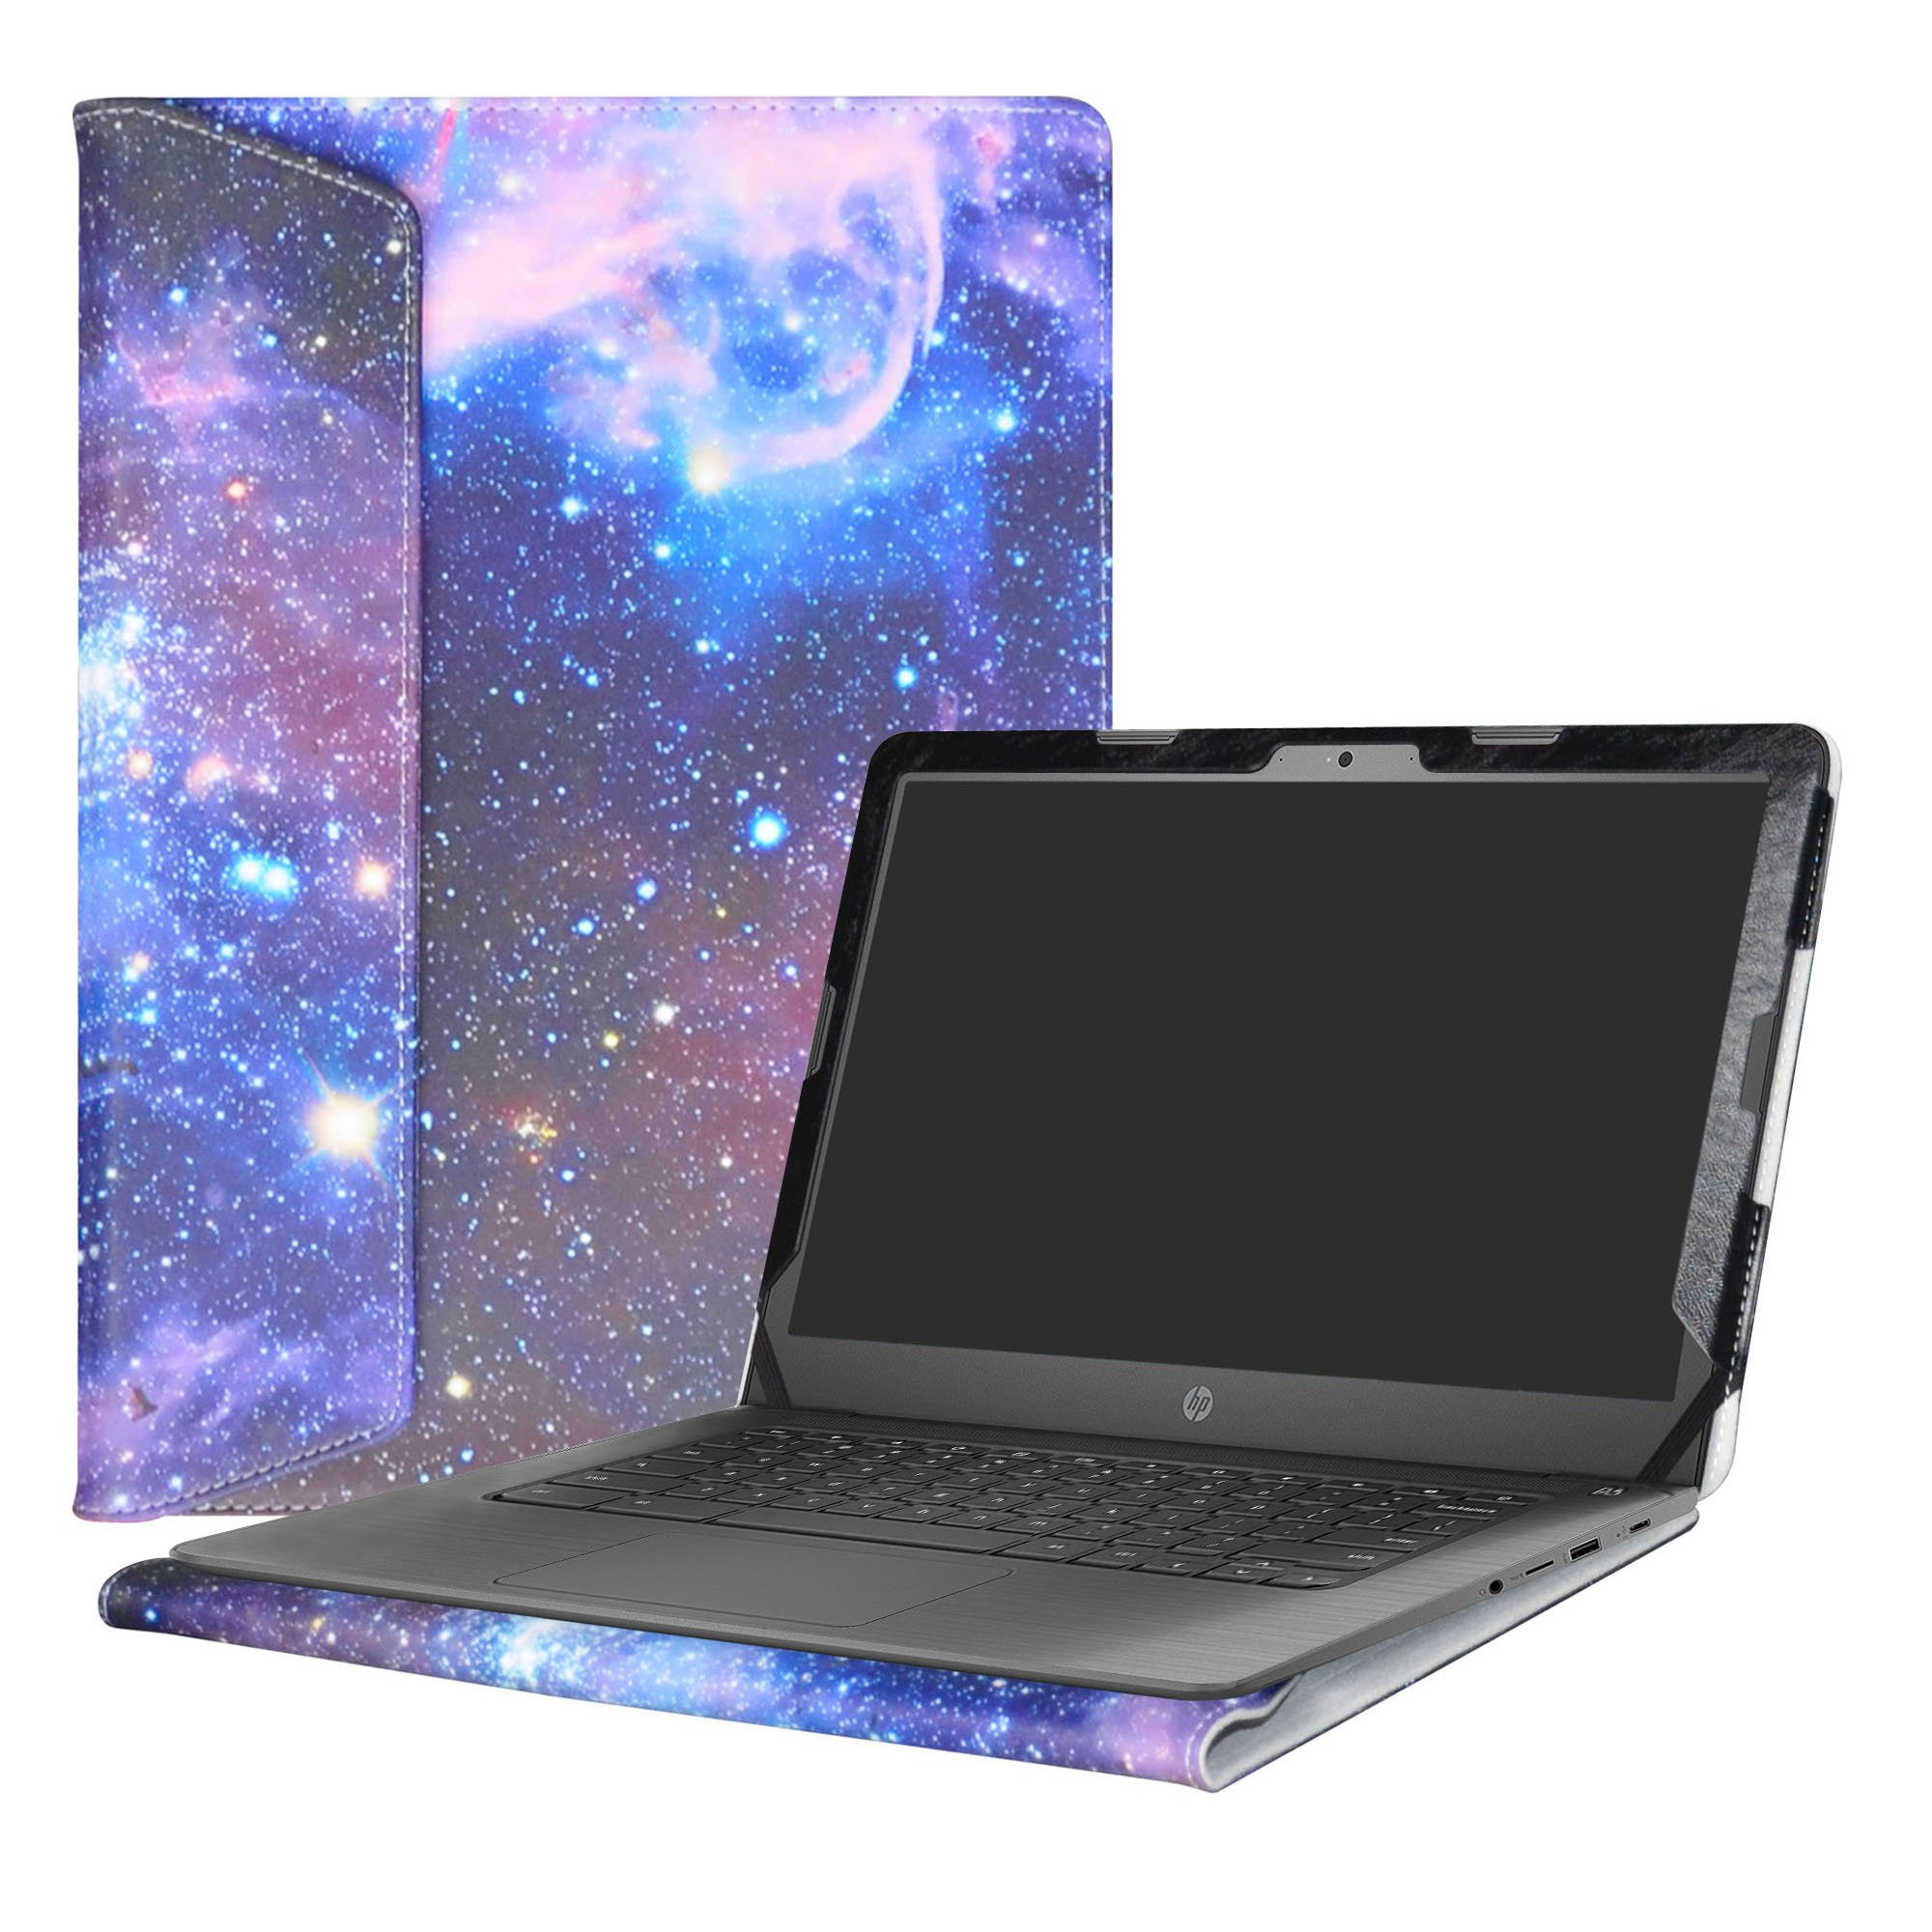 Alapmk Protective Case Cover For 14'' HP Notebook 14-bsXXX (Such as 14-bs153od)/14-bwXXX (Such as 14-bw010nr)/HP 240 G6/HP 245 G6/HP 246 G6 Laptop(Not fit 14-anXXX 14-amXXX 14-cmXXX Series),Galaxy